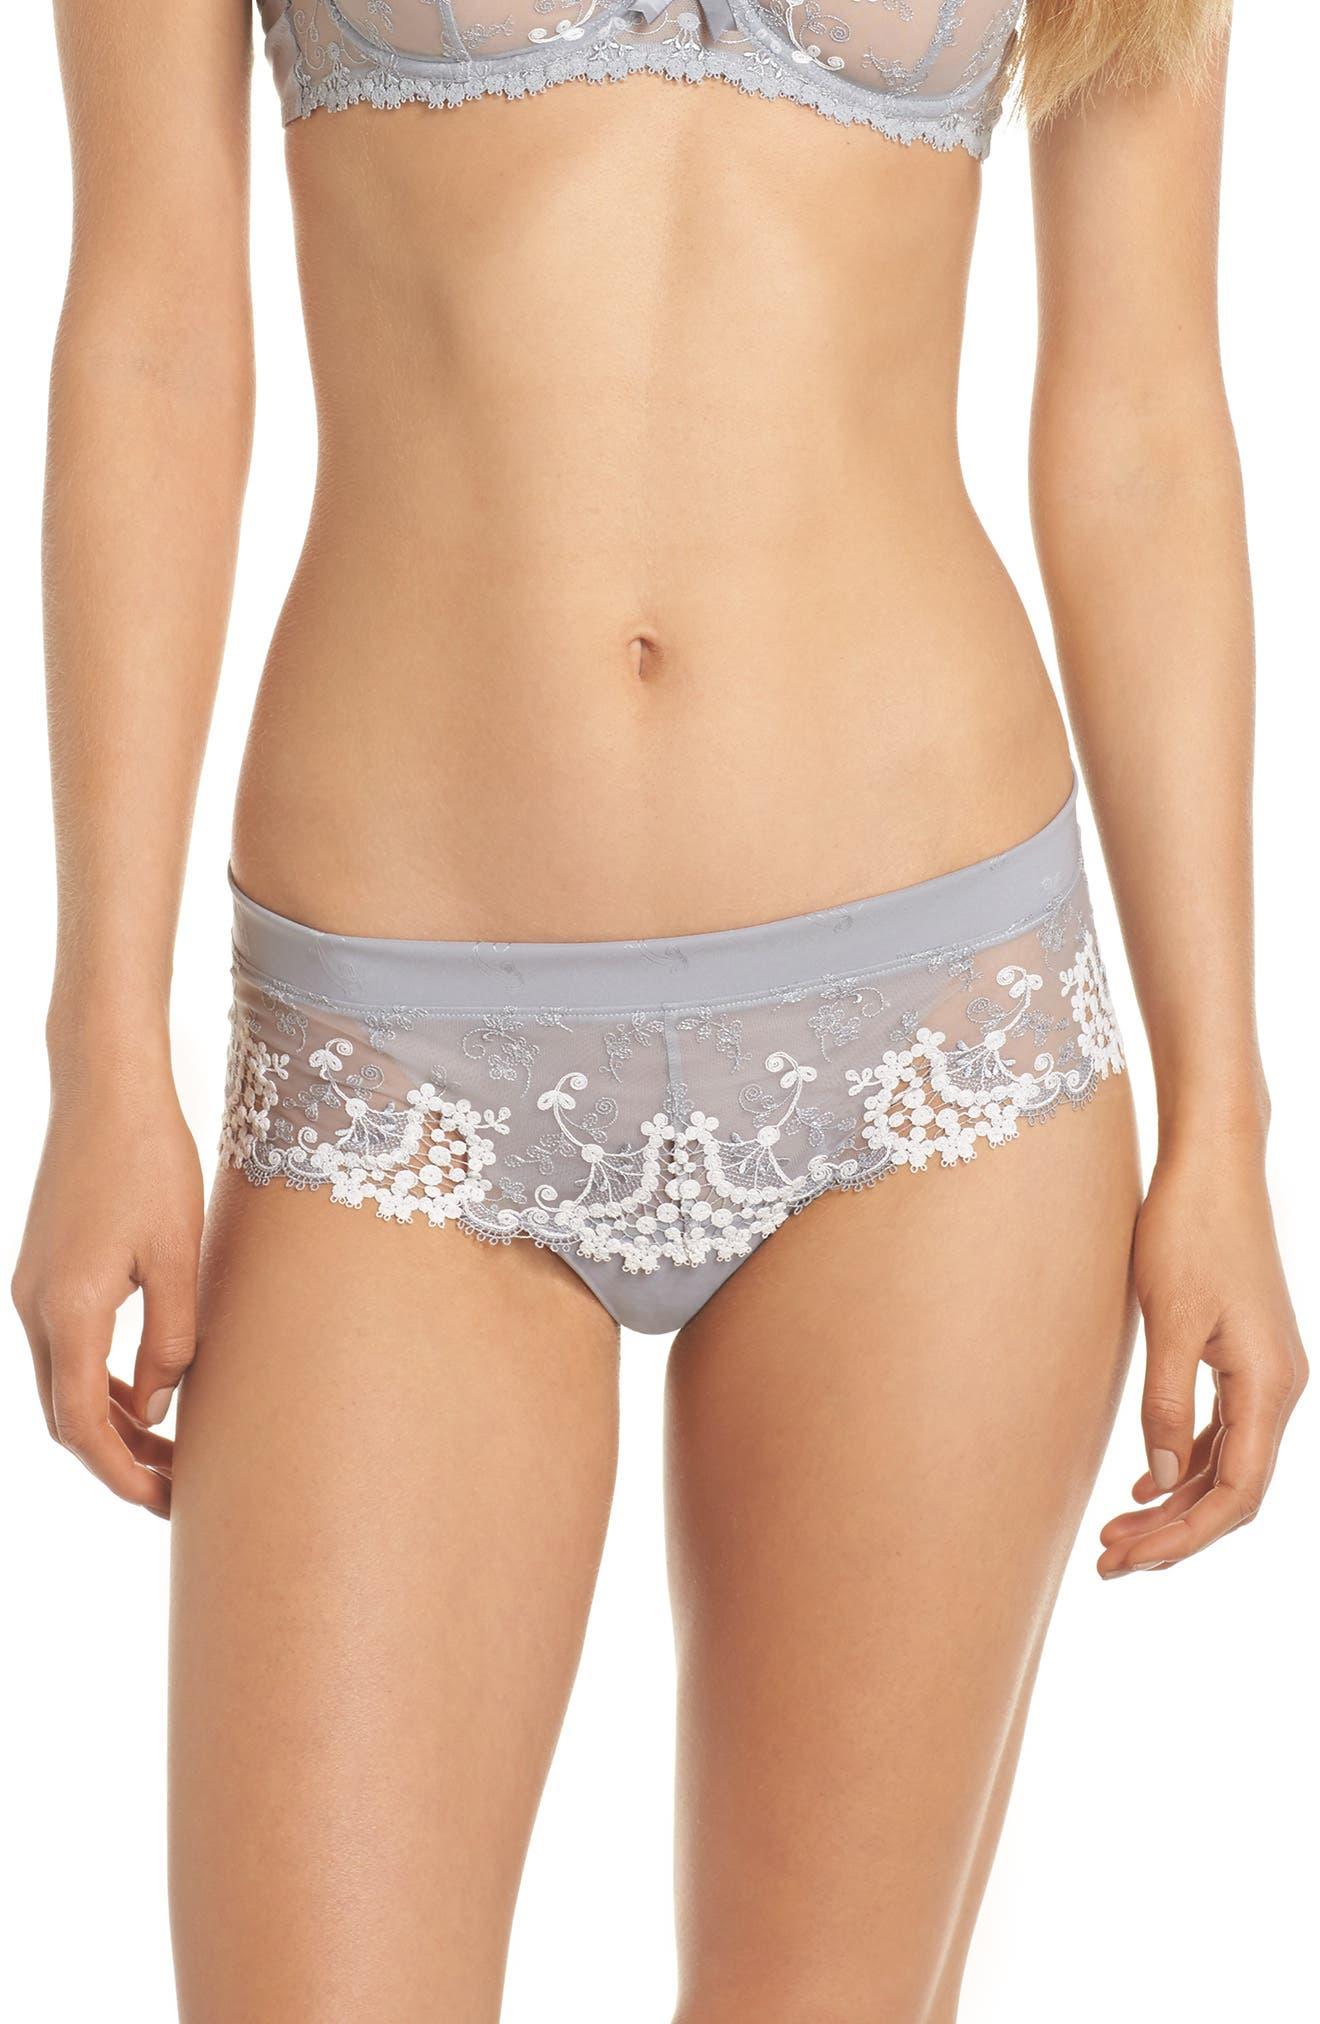 'Wish' Embroidered Boyshorts,                         Main,                         color,